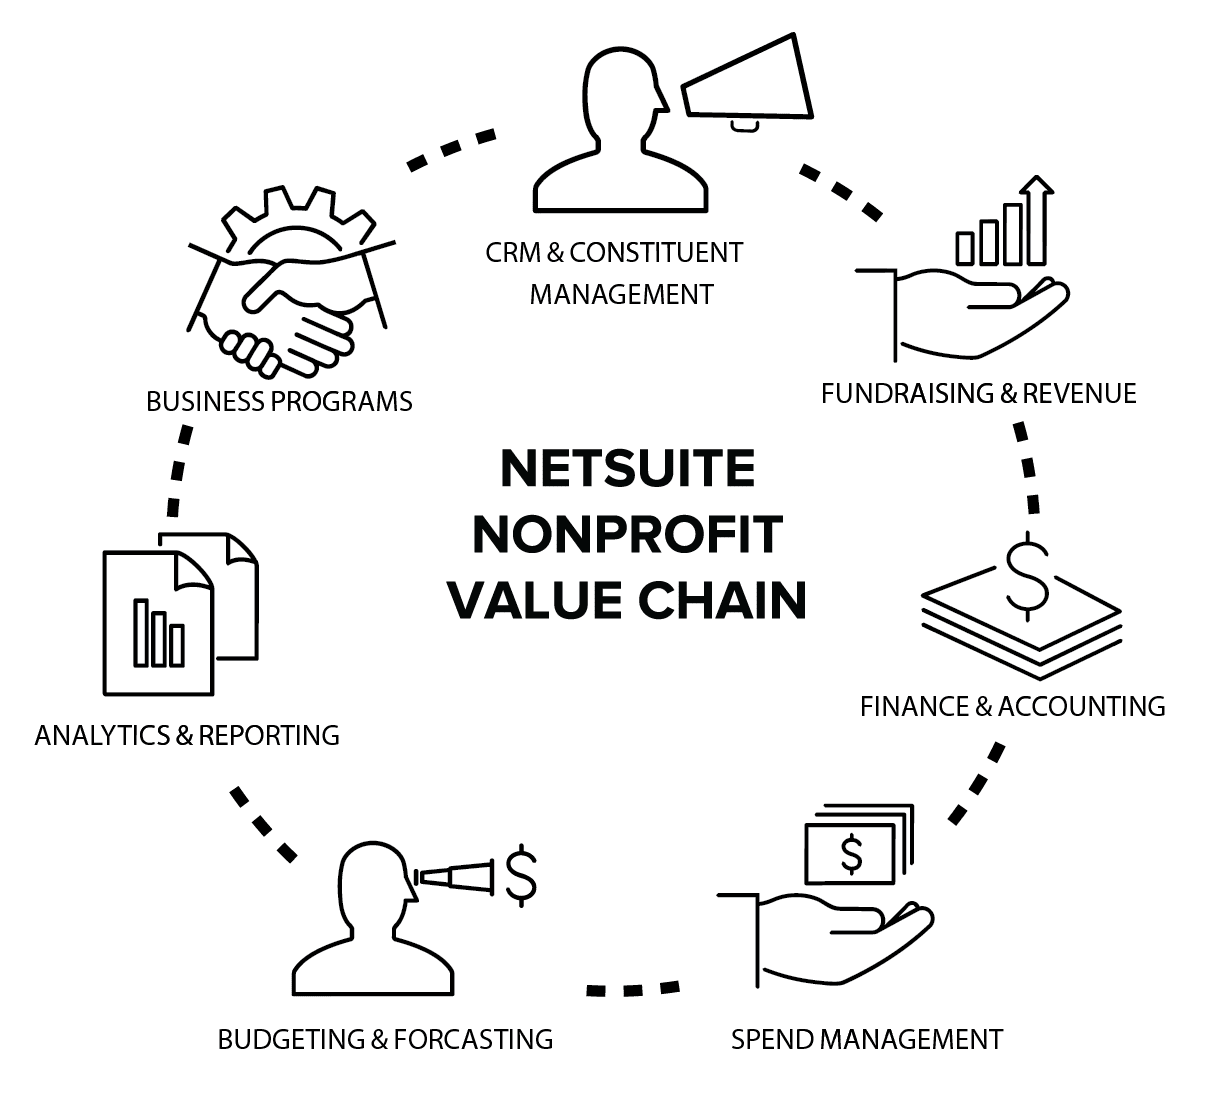 NetSuite Nonprofit Value Chain